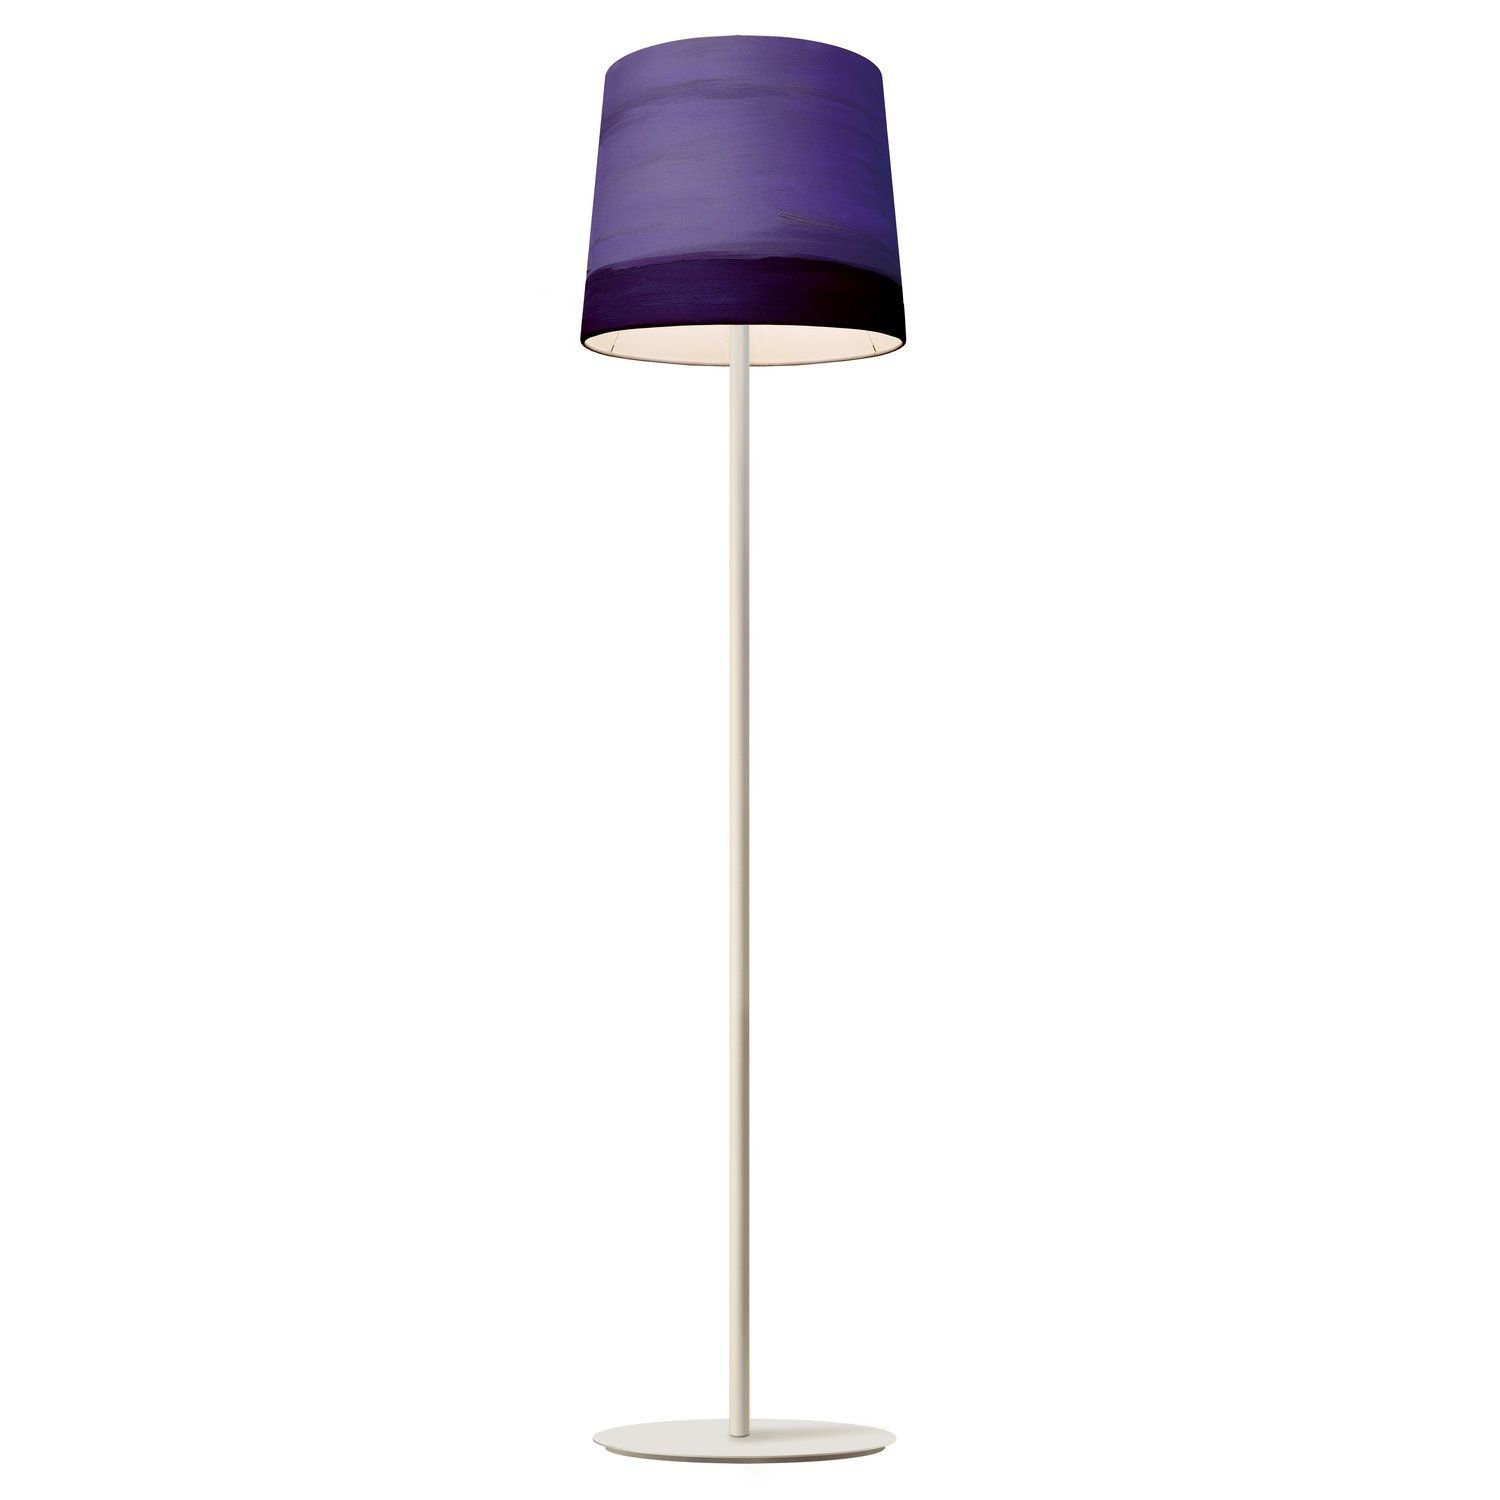 The Sisters Floor Lamp Evening Floor Lamp Lamp Modern Floor